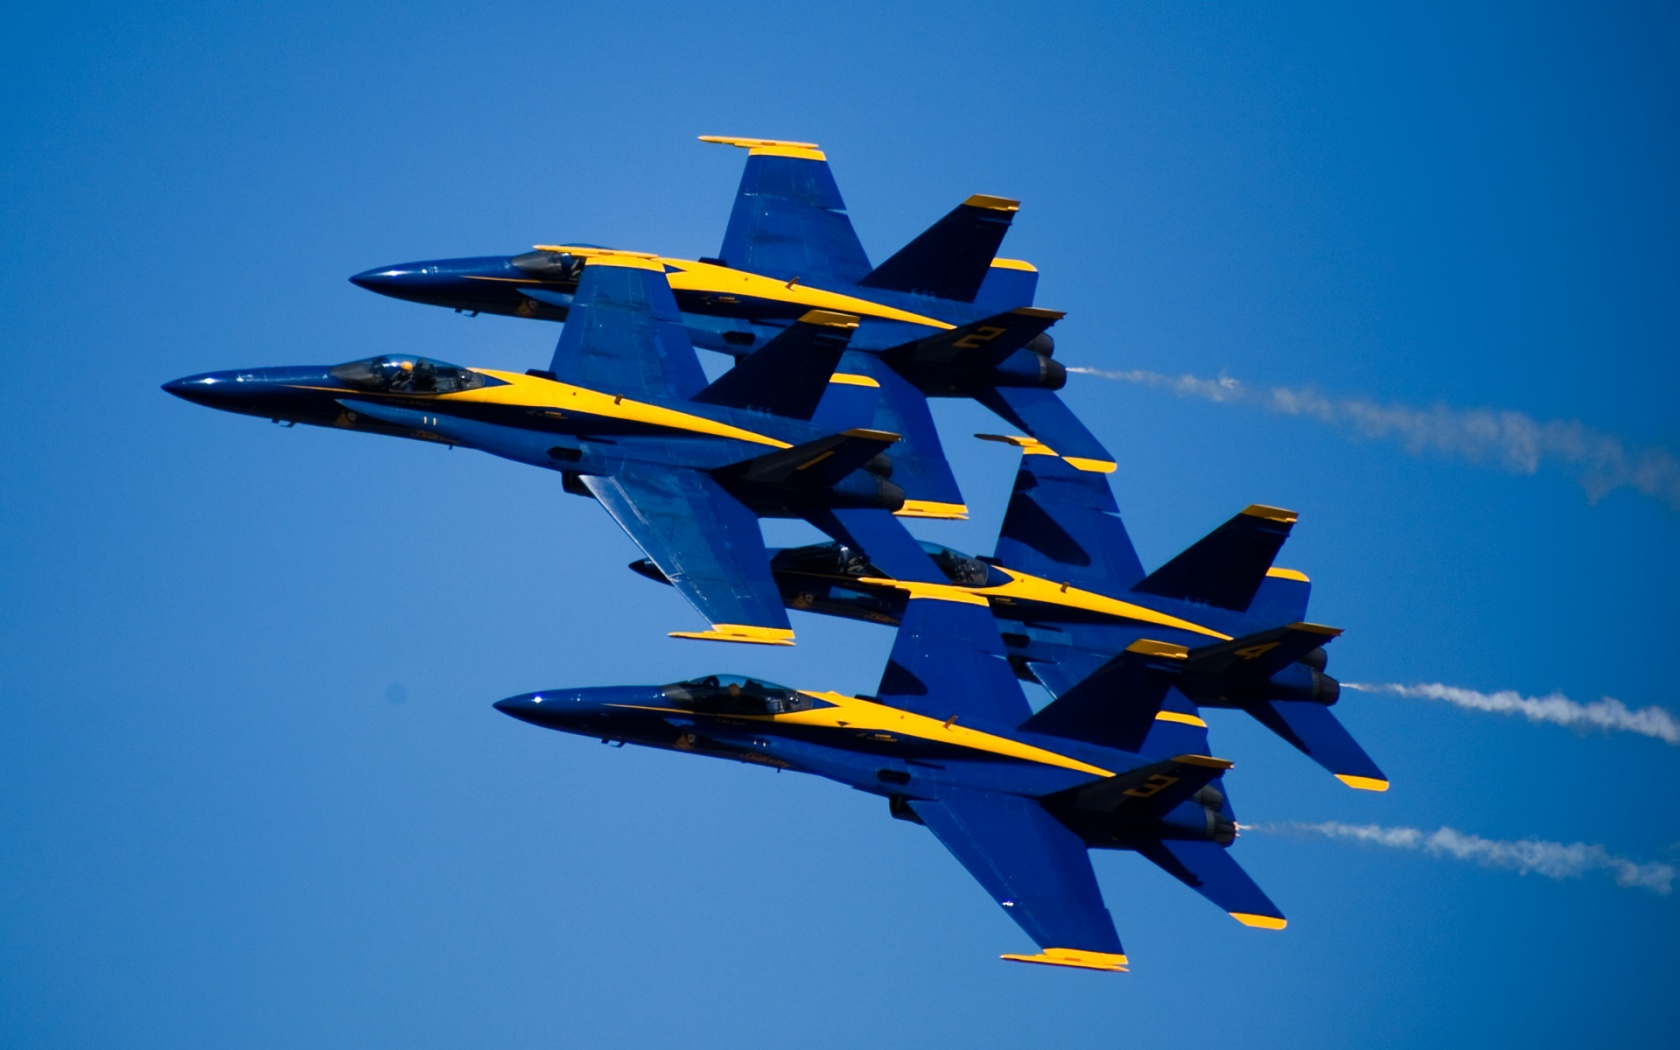 Blue Angels 1680x1050 wallpaper download page 333821 1680x1050